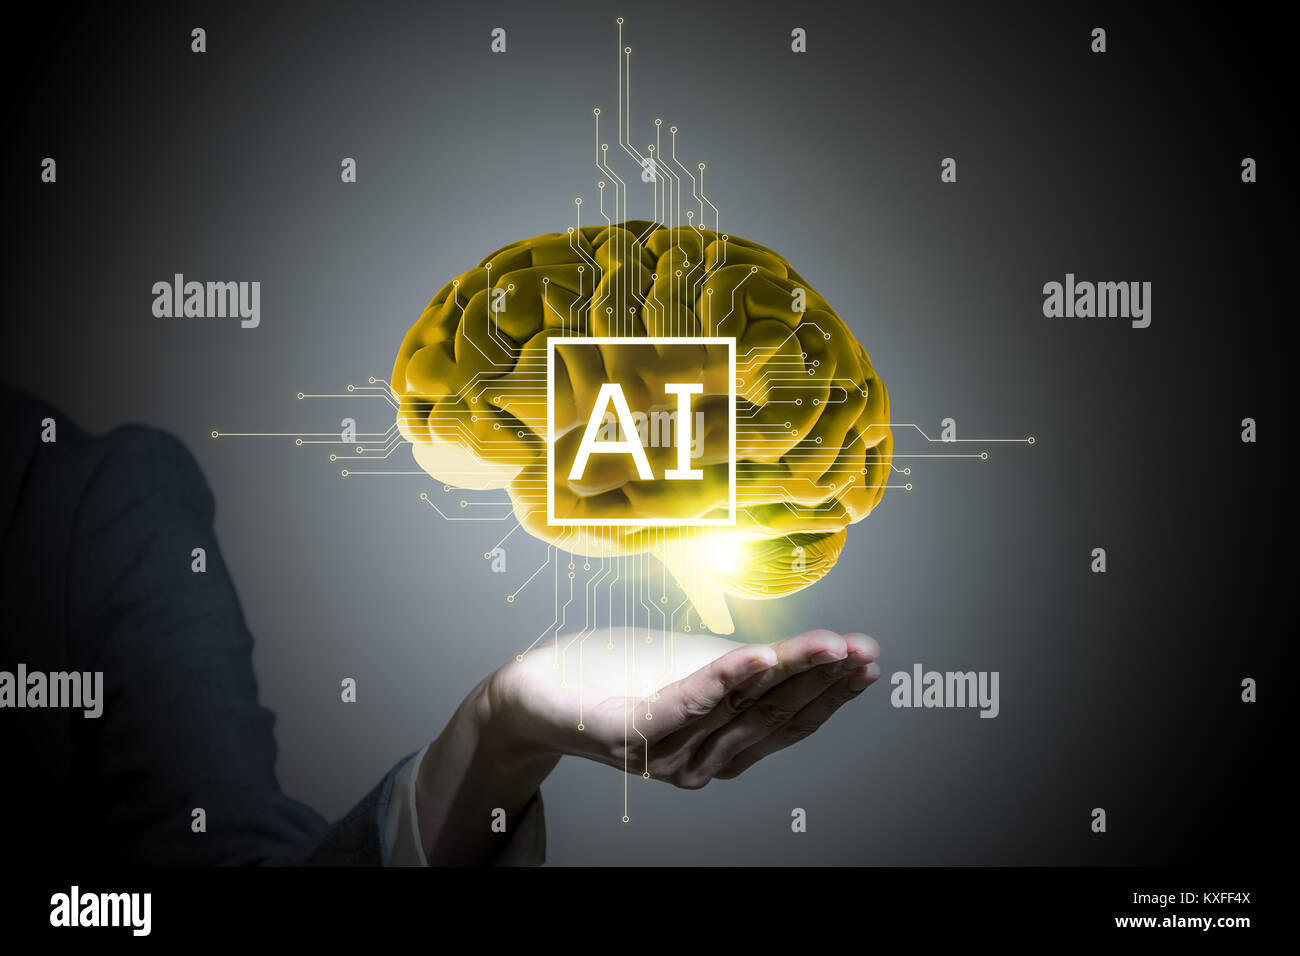 AI(Artificial Intelligence) concetto, rendering 3D, immagine astratta visual Immagini Stock